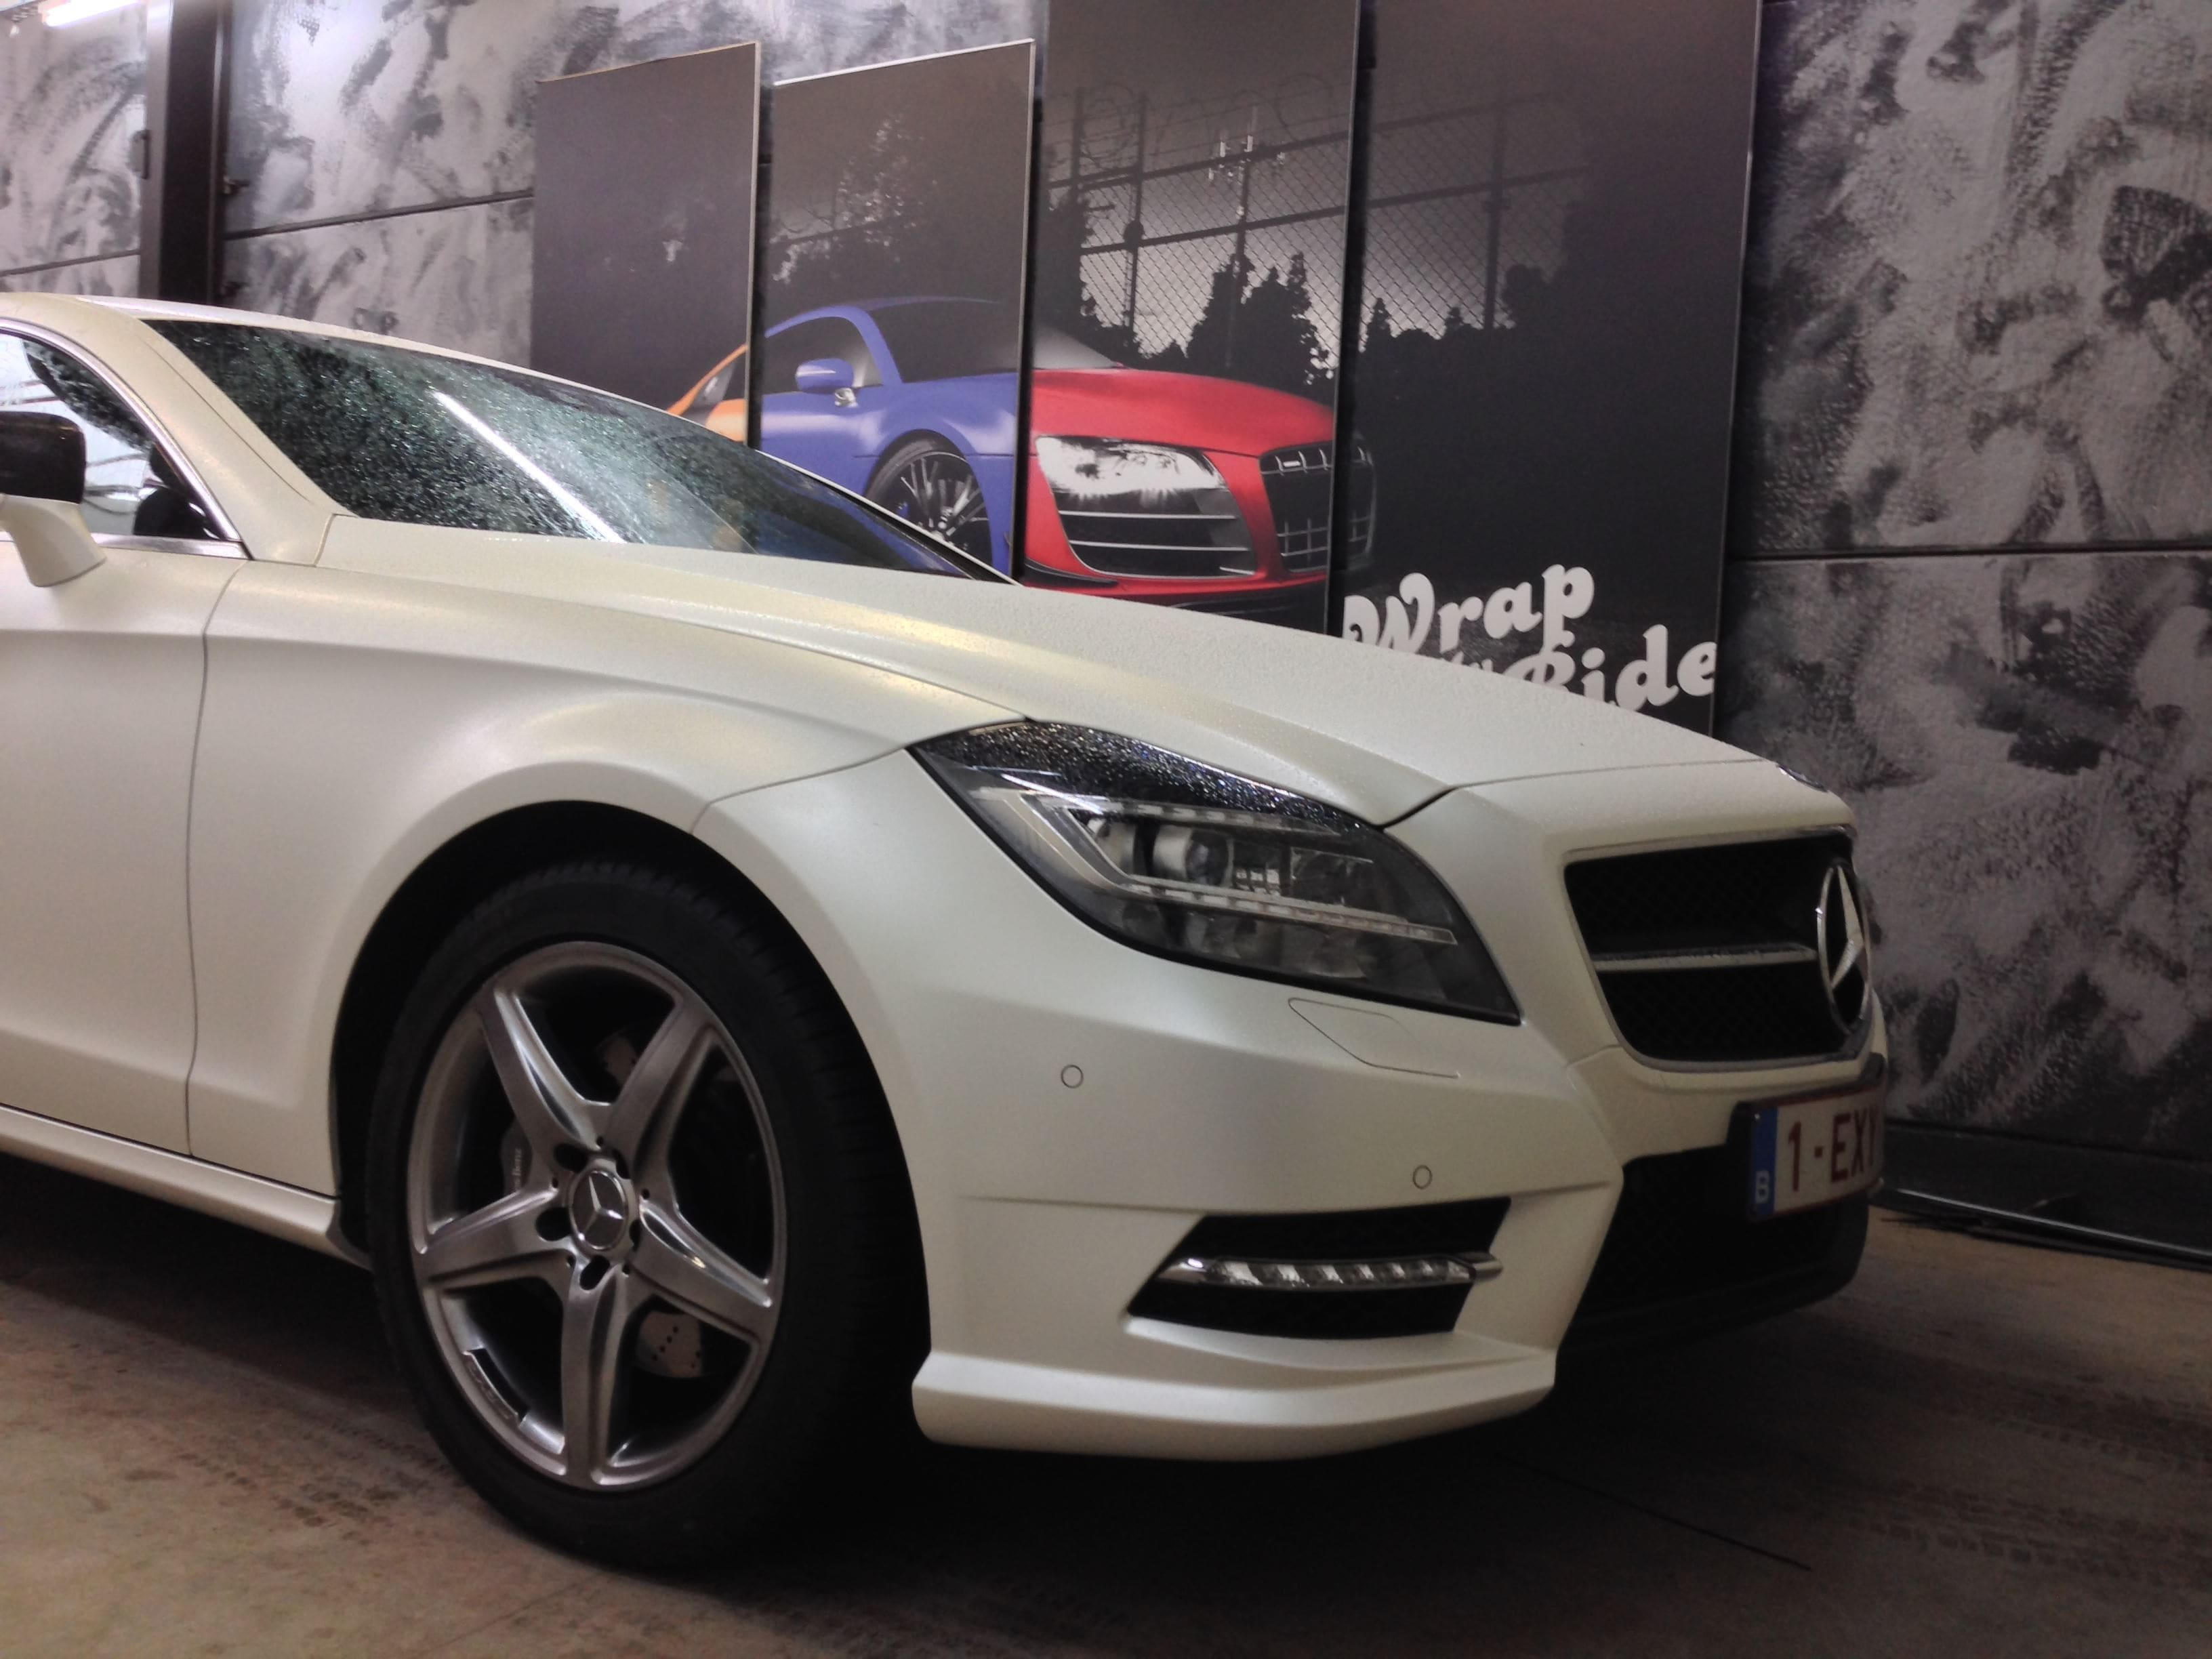 Mercedes CLS met White Satin Pearl Wrap, Carwrapping door Wrapmyride.nu Foto-nr:6221, ©2020